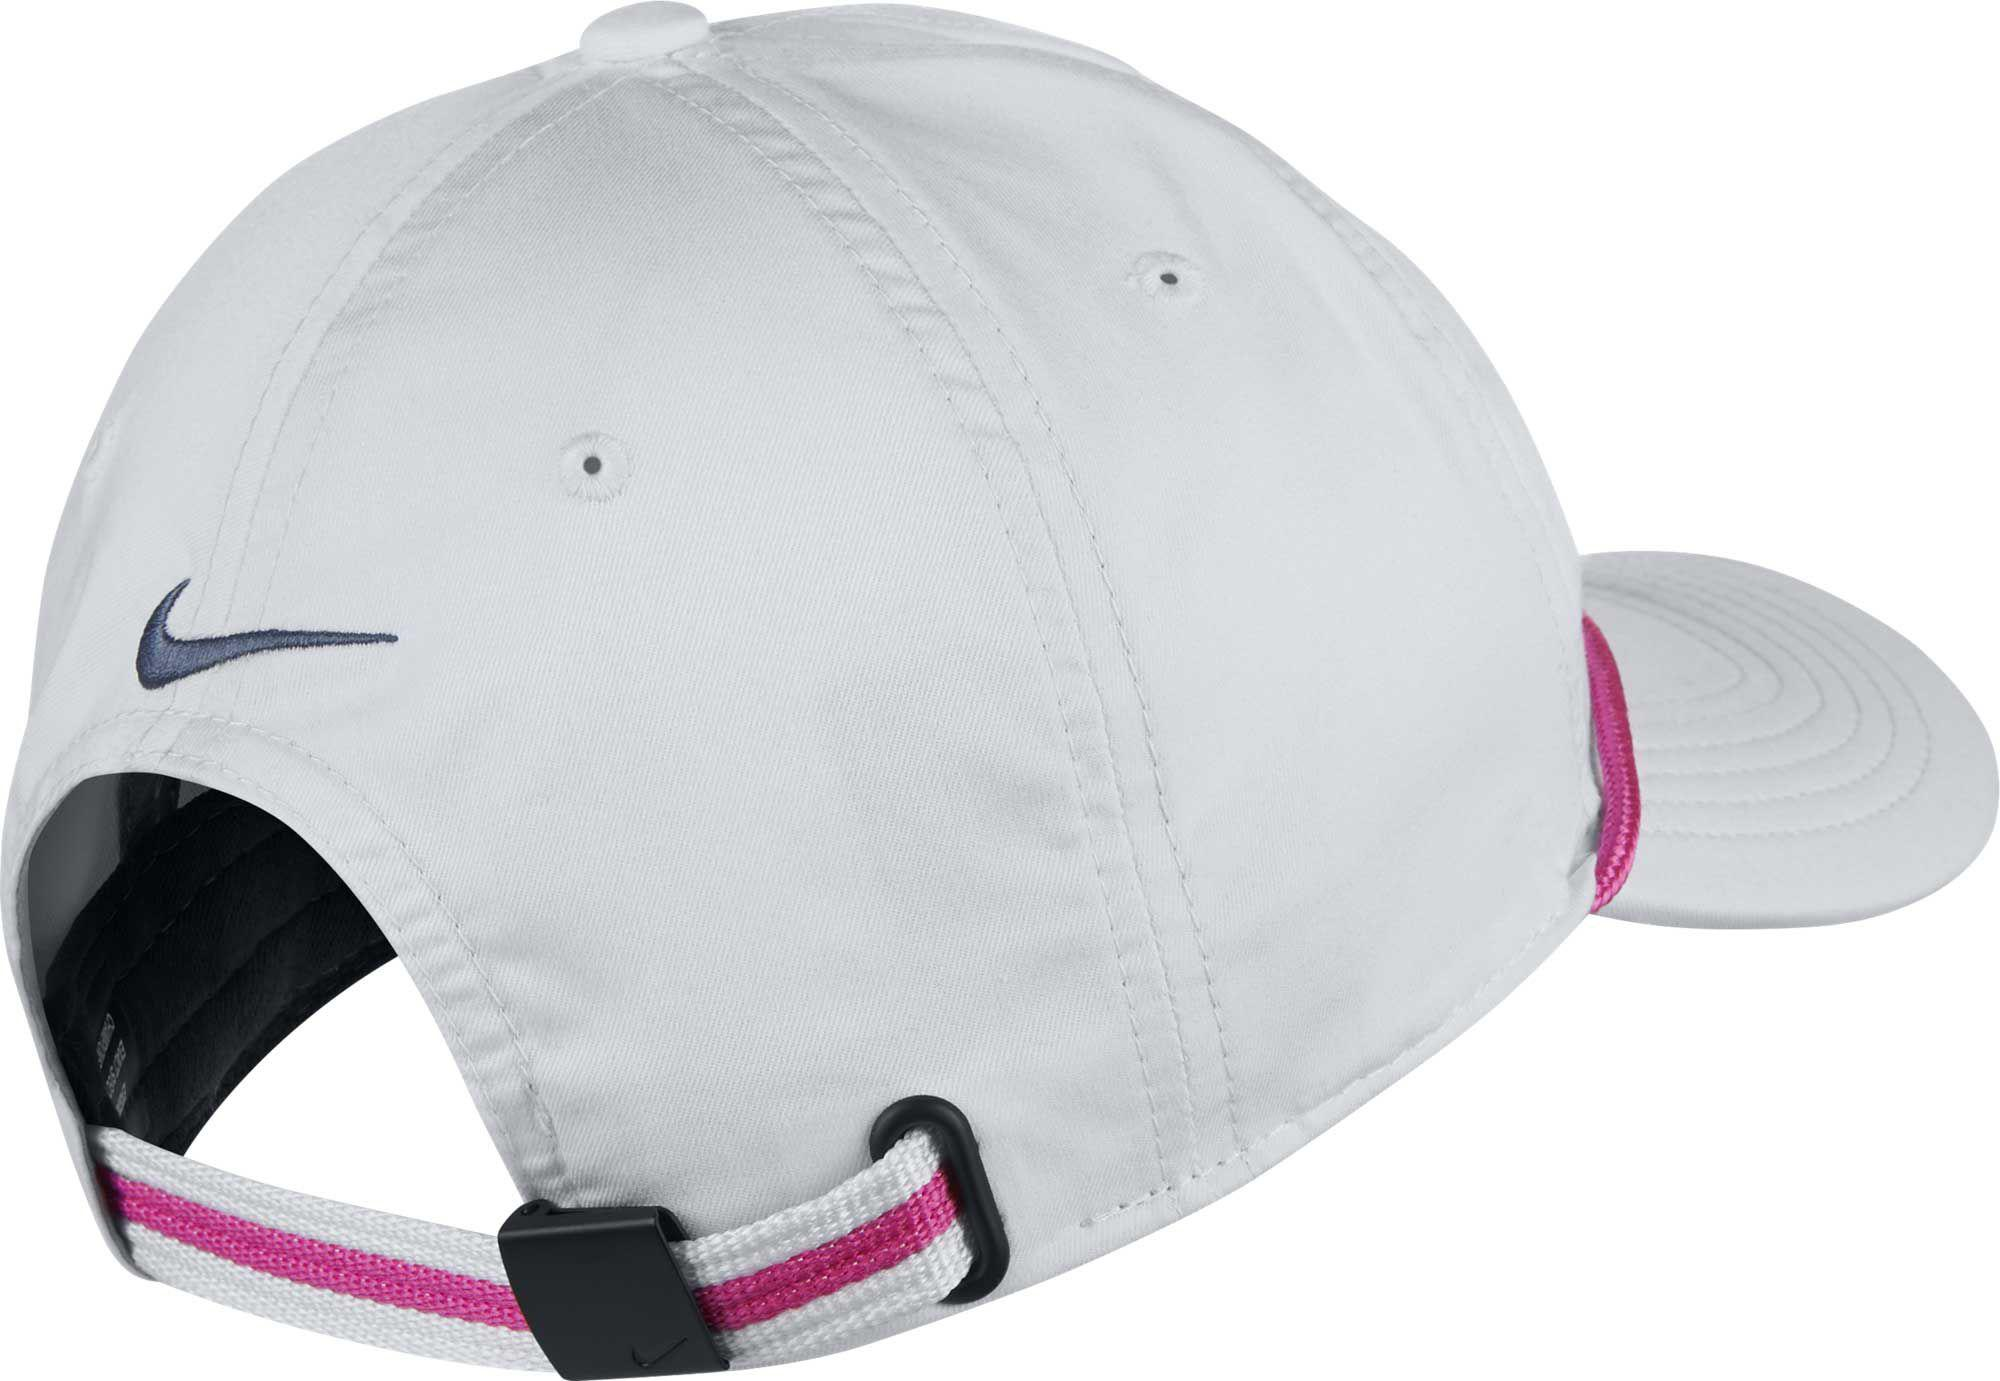 Lyst - Nike Aerobill Classic99 Golf Hat in White for Men 25ab5823ed90